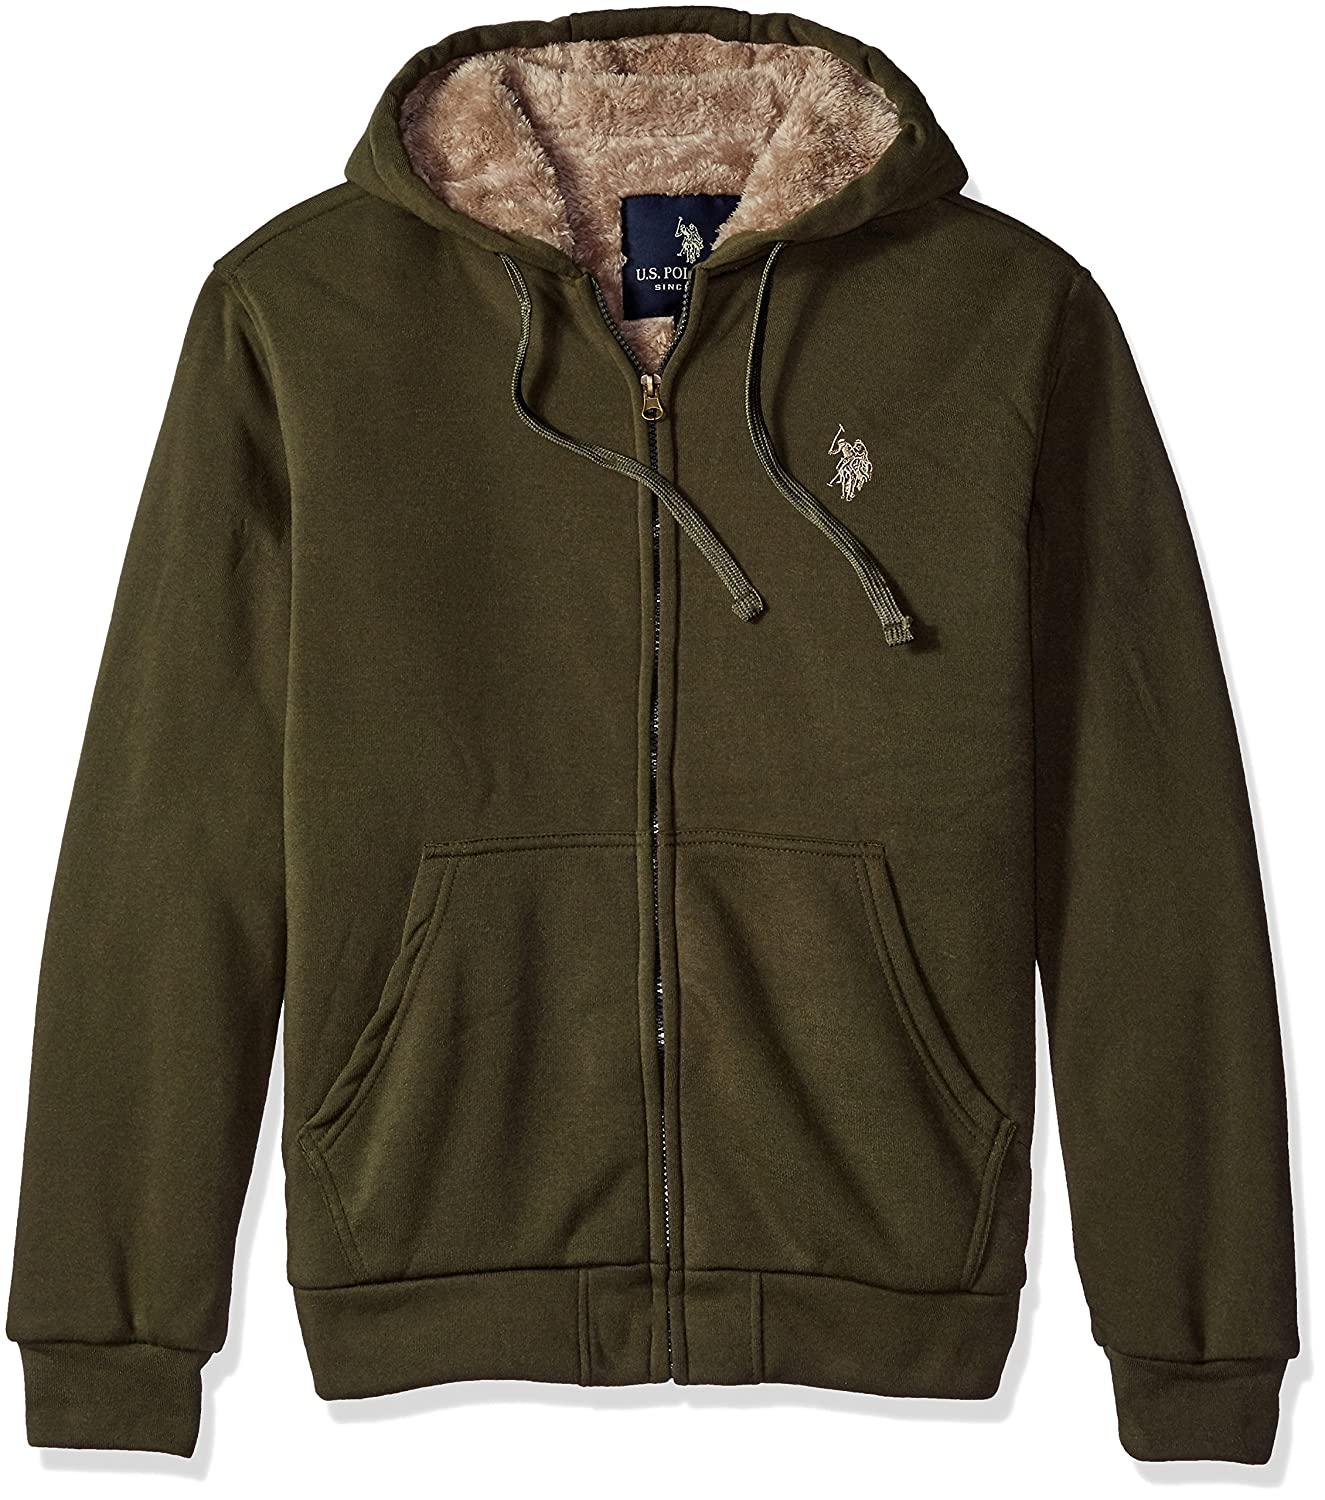 U.S. Polo Assn. OUTERWEAR メンズ B01LXH97DJ Large|フォレスト ナイト(Forest Night) フォレスト ナイト(Forest Night) Large